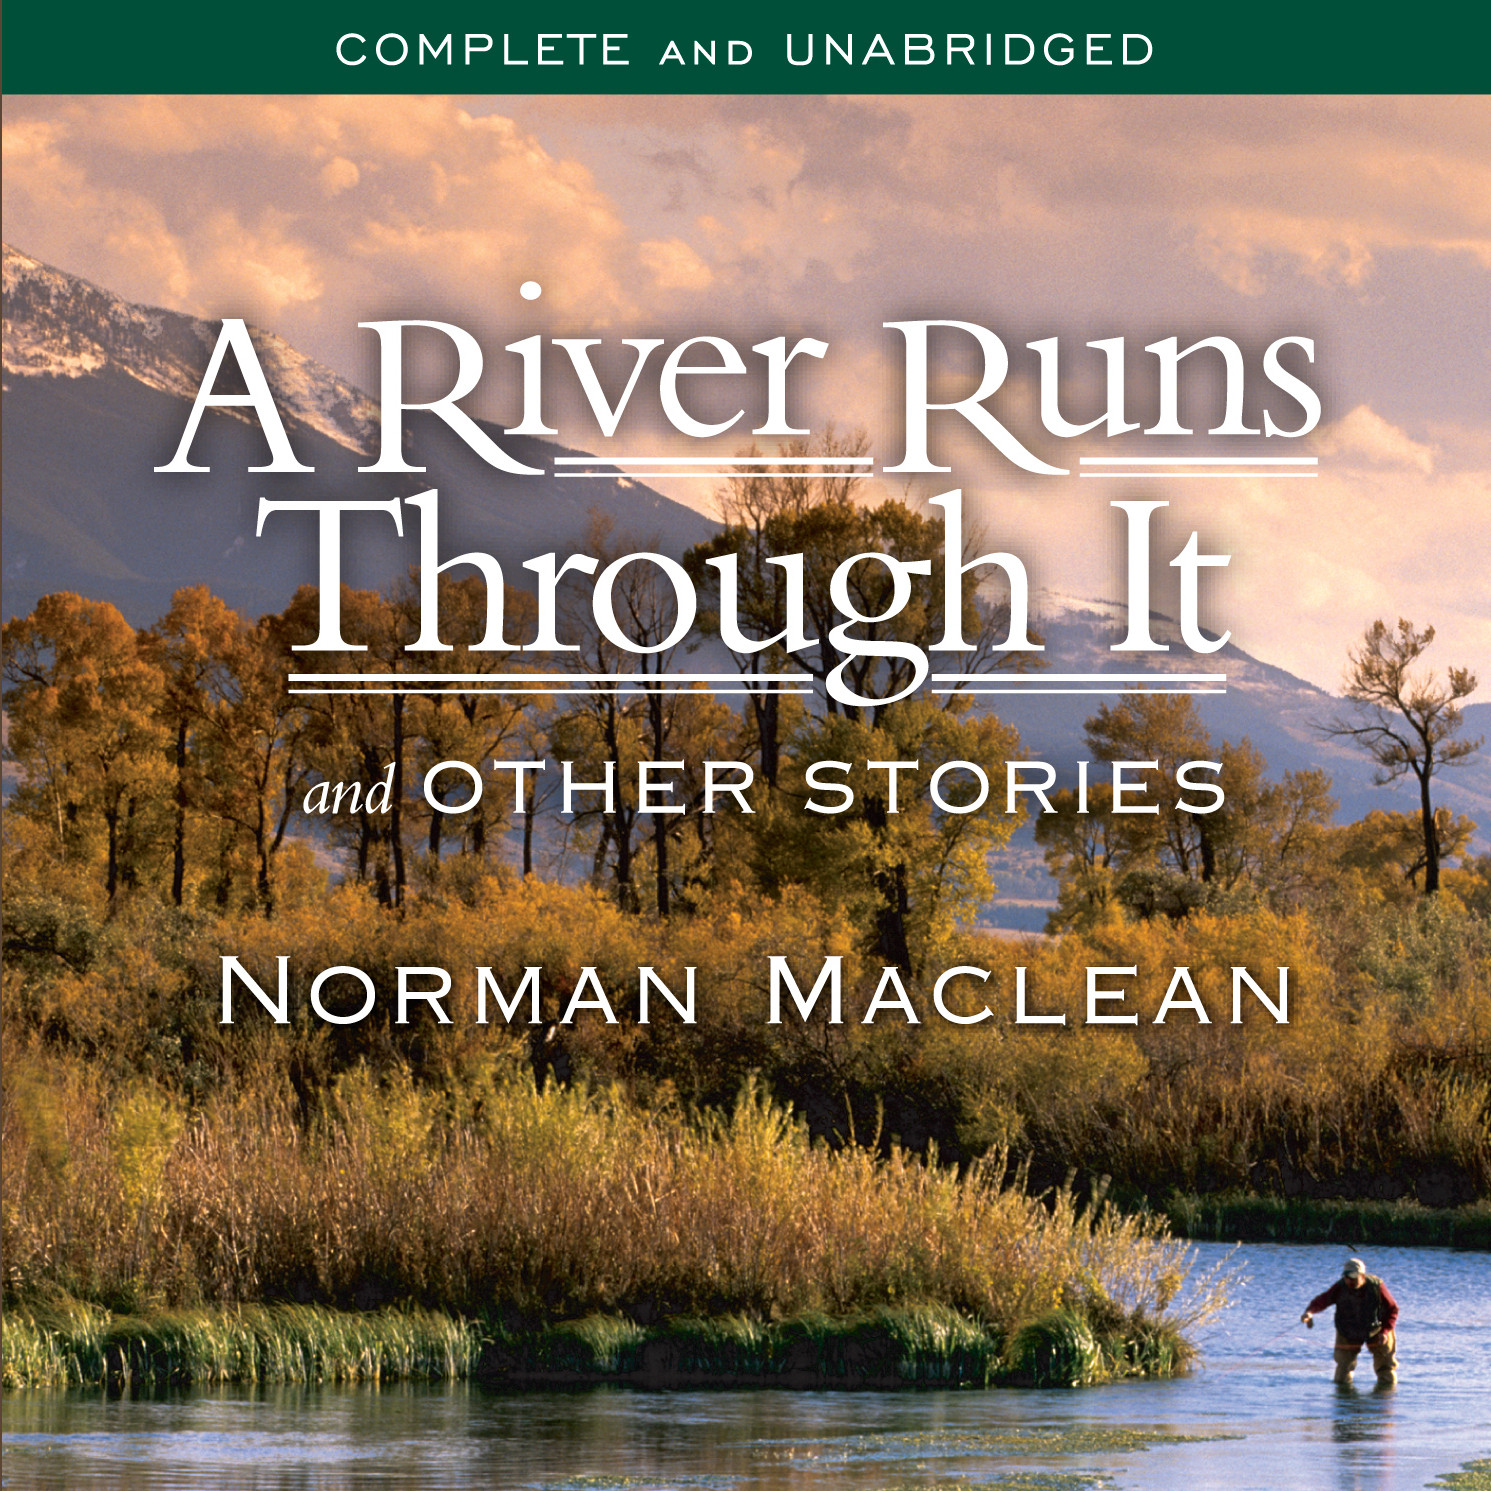 Printable A River Runs through It, and Other Stories Audiobook Cover Art